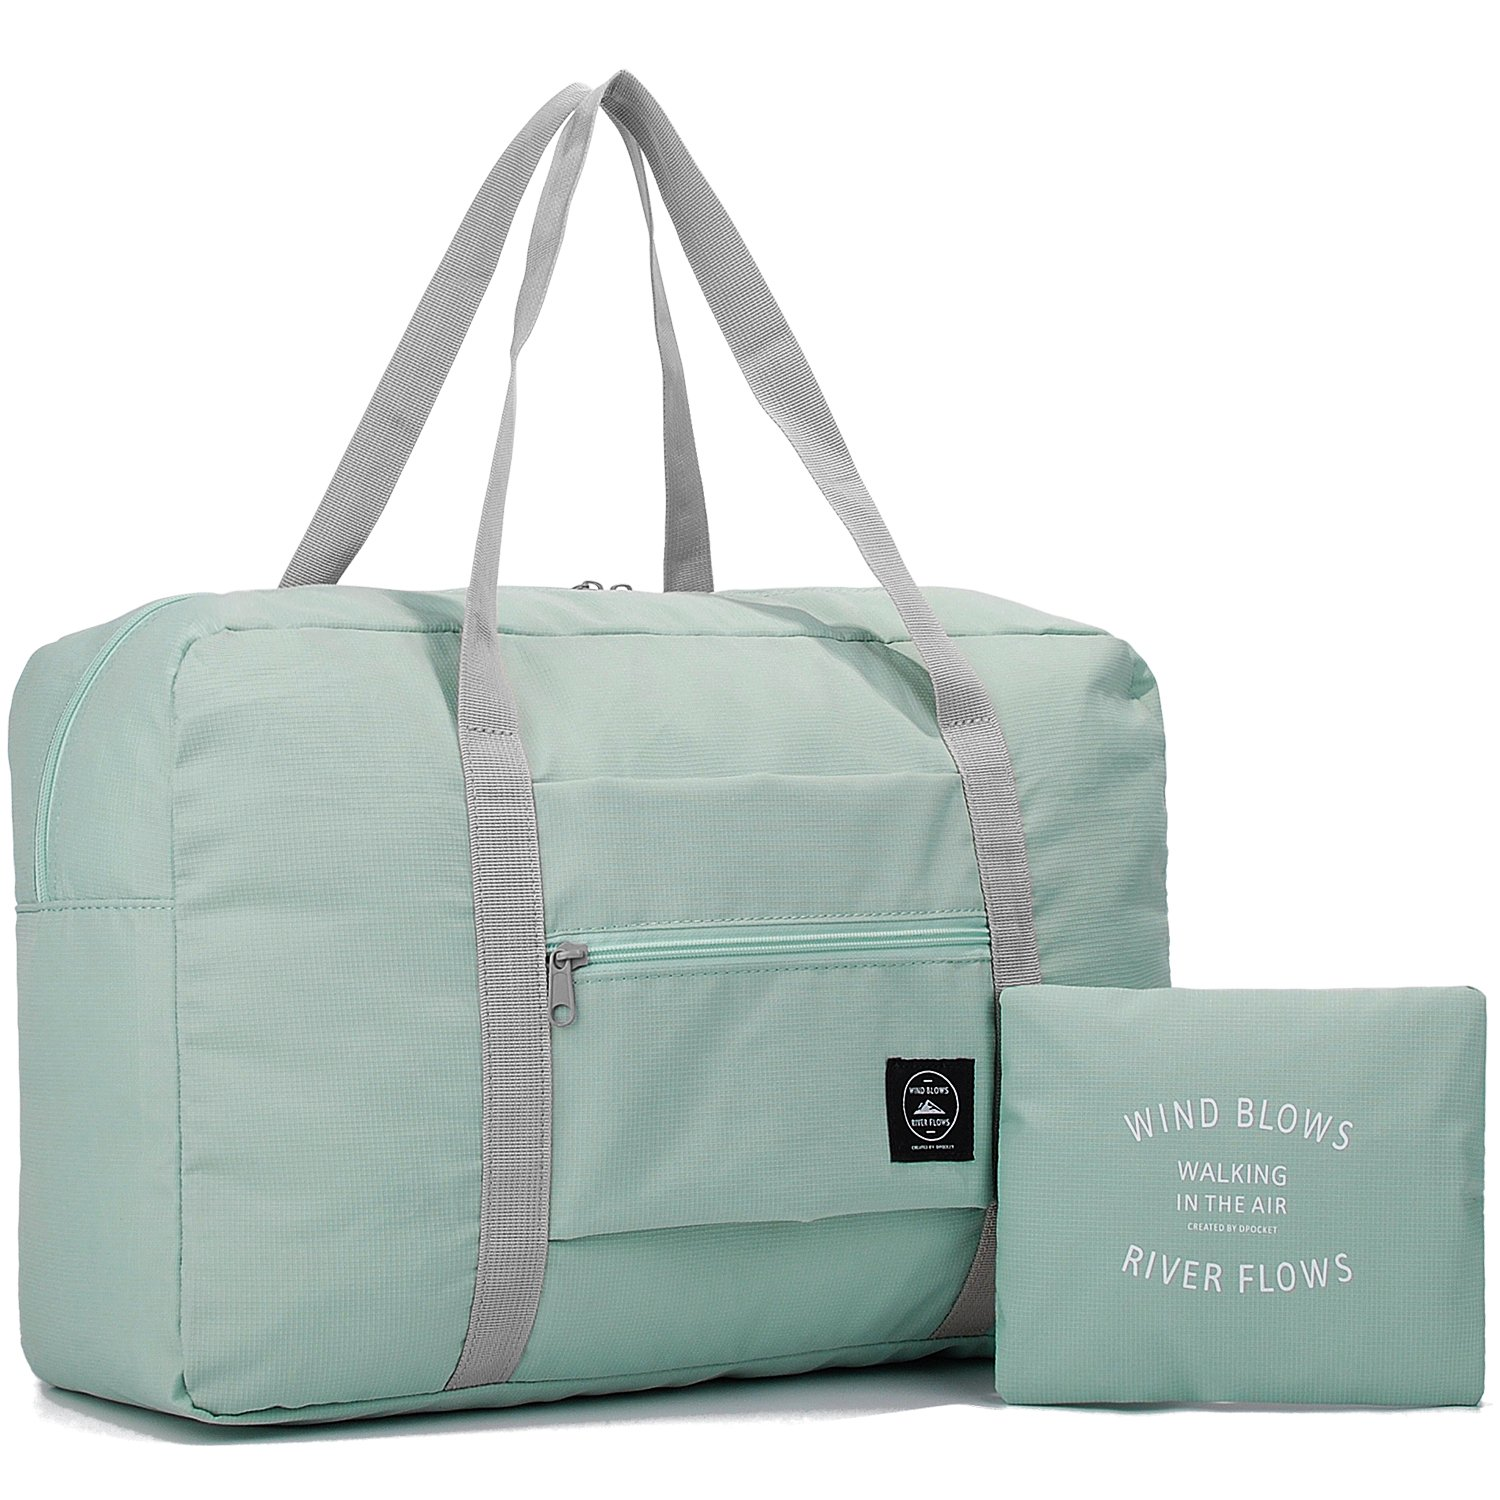 Wandf Foldable Travel Duffel Bag Luggage Sports Gym Water Resistant Nylon (Mint green)